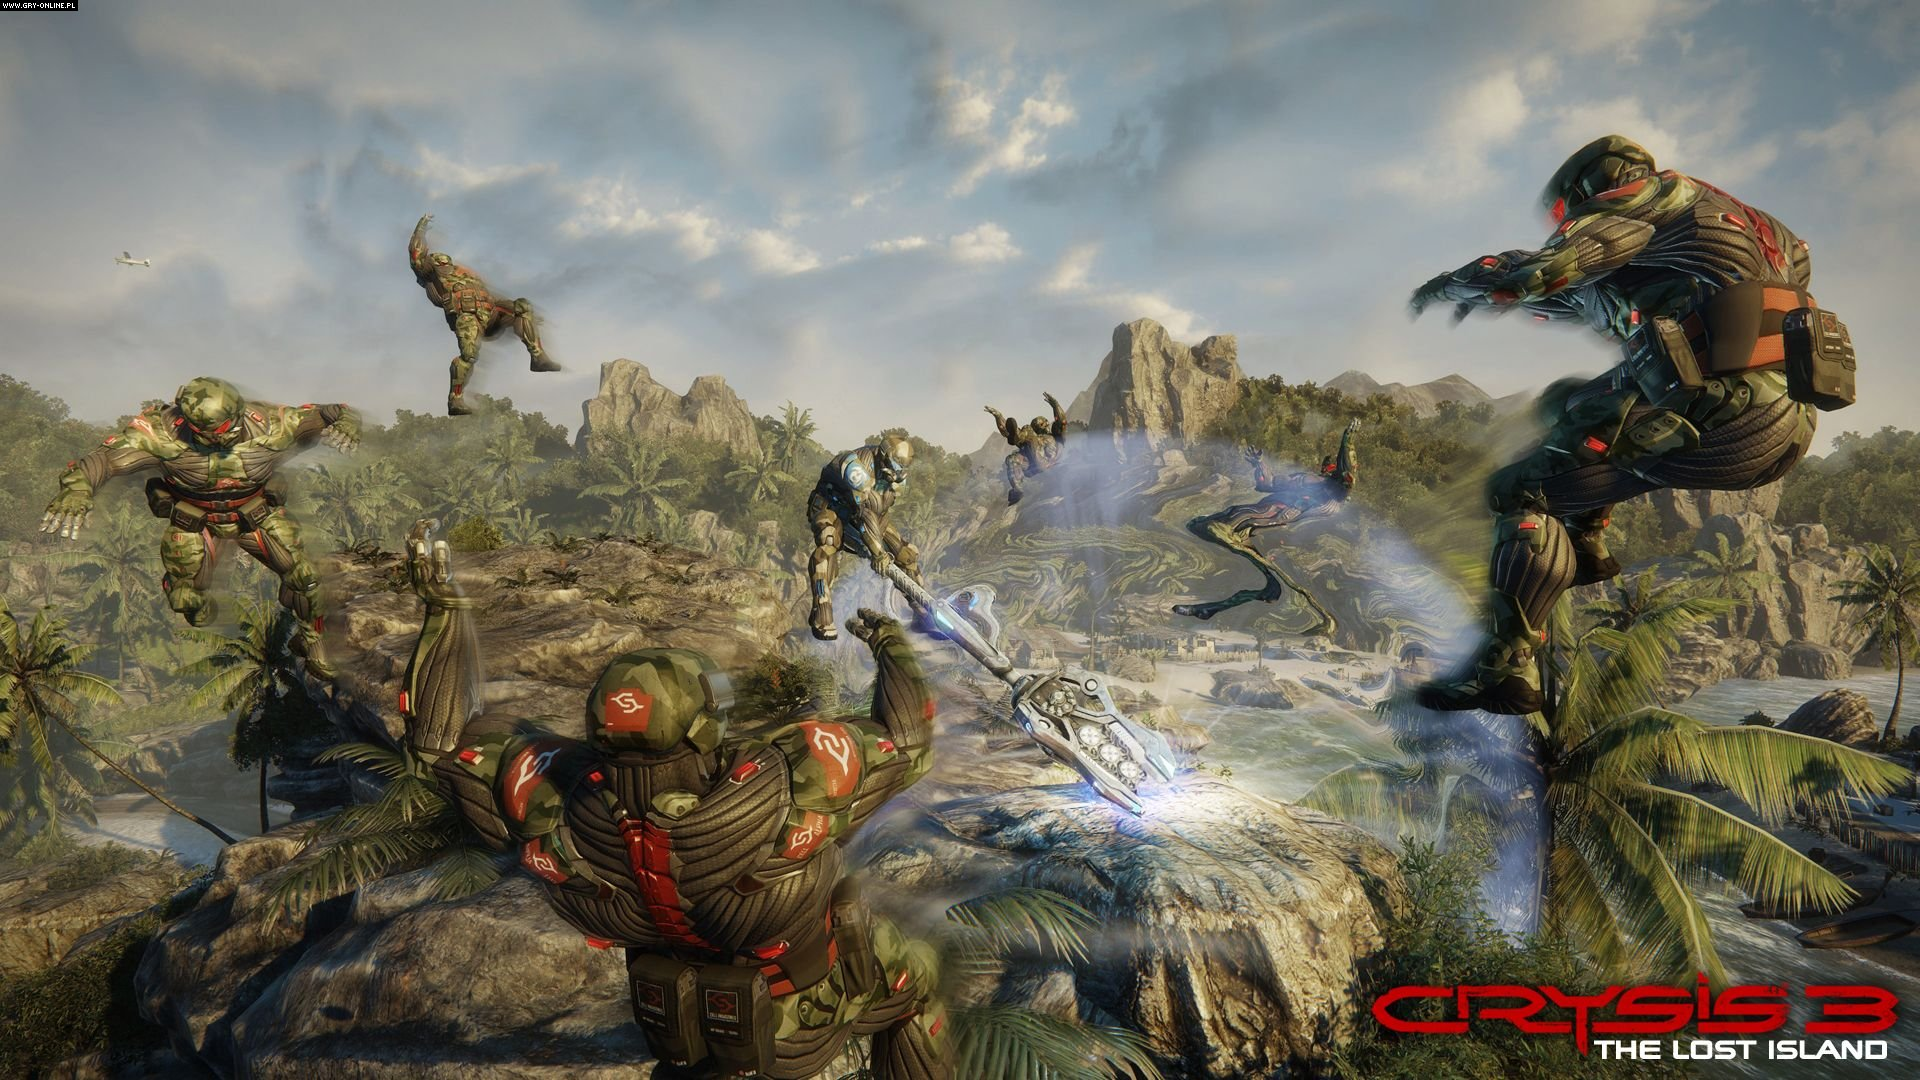 Crysis 3 PC, X360, PS3 Gry Screen 2/52, Crytek, Electronic Arts Inc.